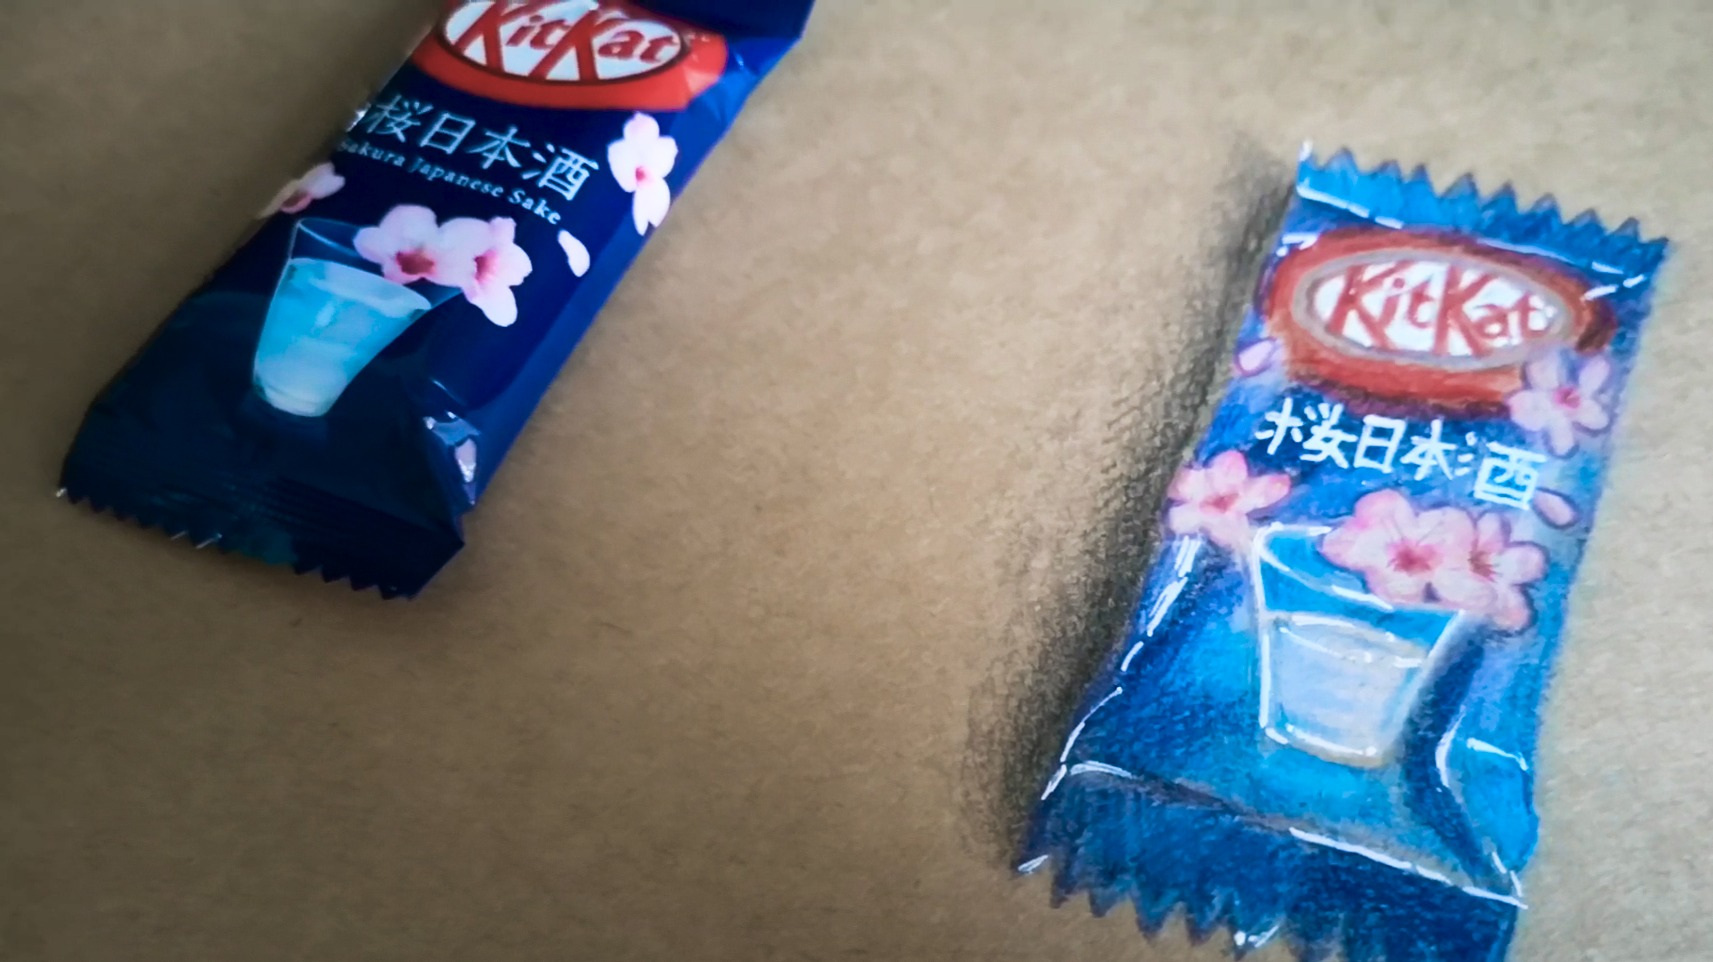 Japanese KitKat with Sakura and Sake Flavour drawn with Color Pencils